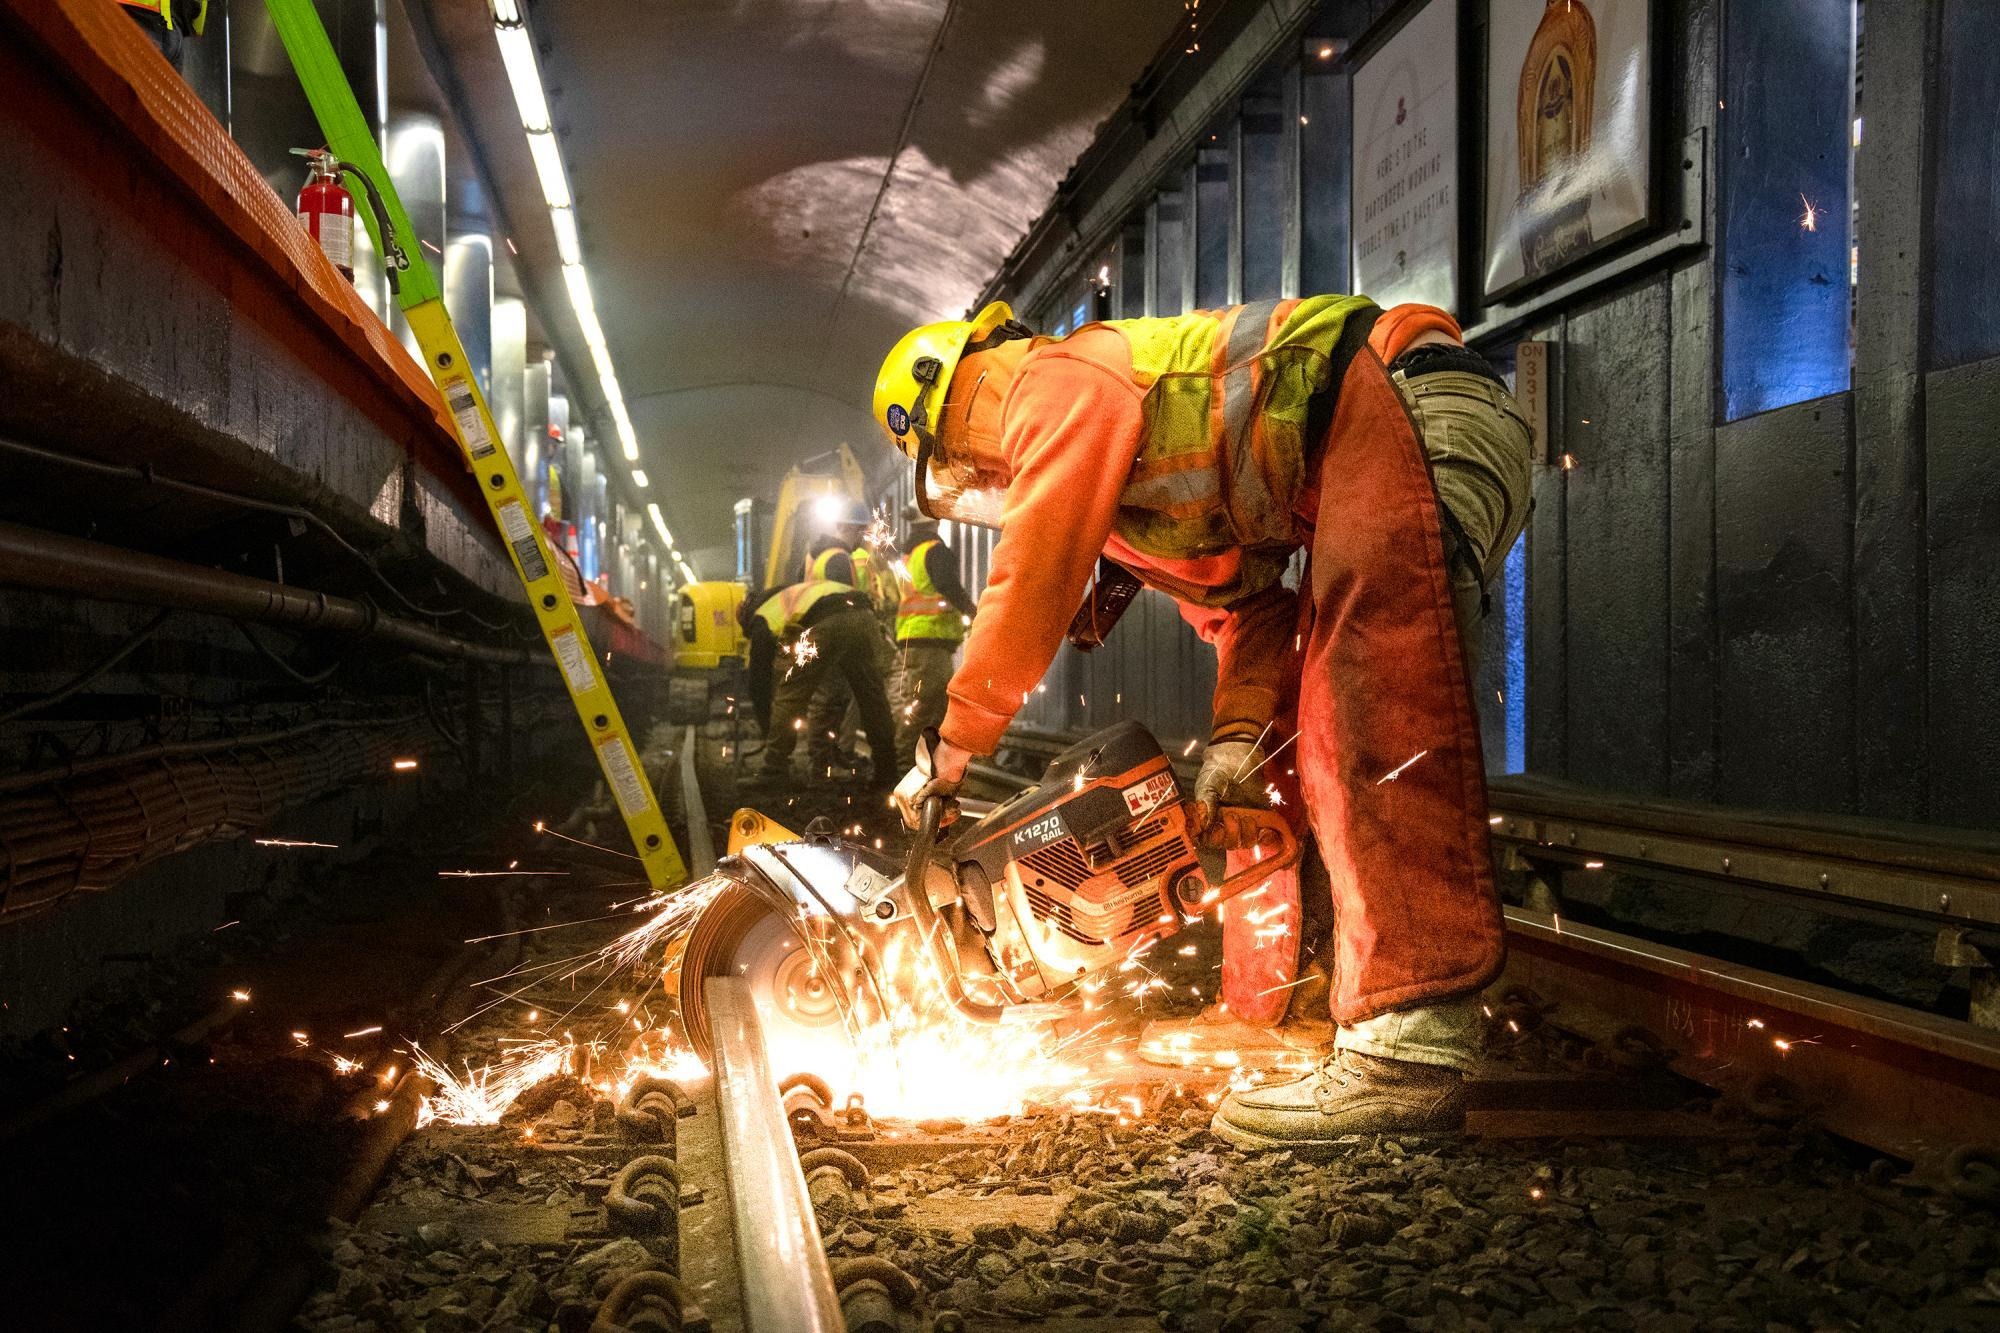 A crew member cuts track at Haymarket as part of rail replacement during the first Orange Line weekend shutdown of 2020